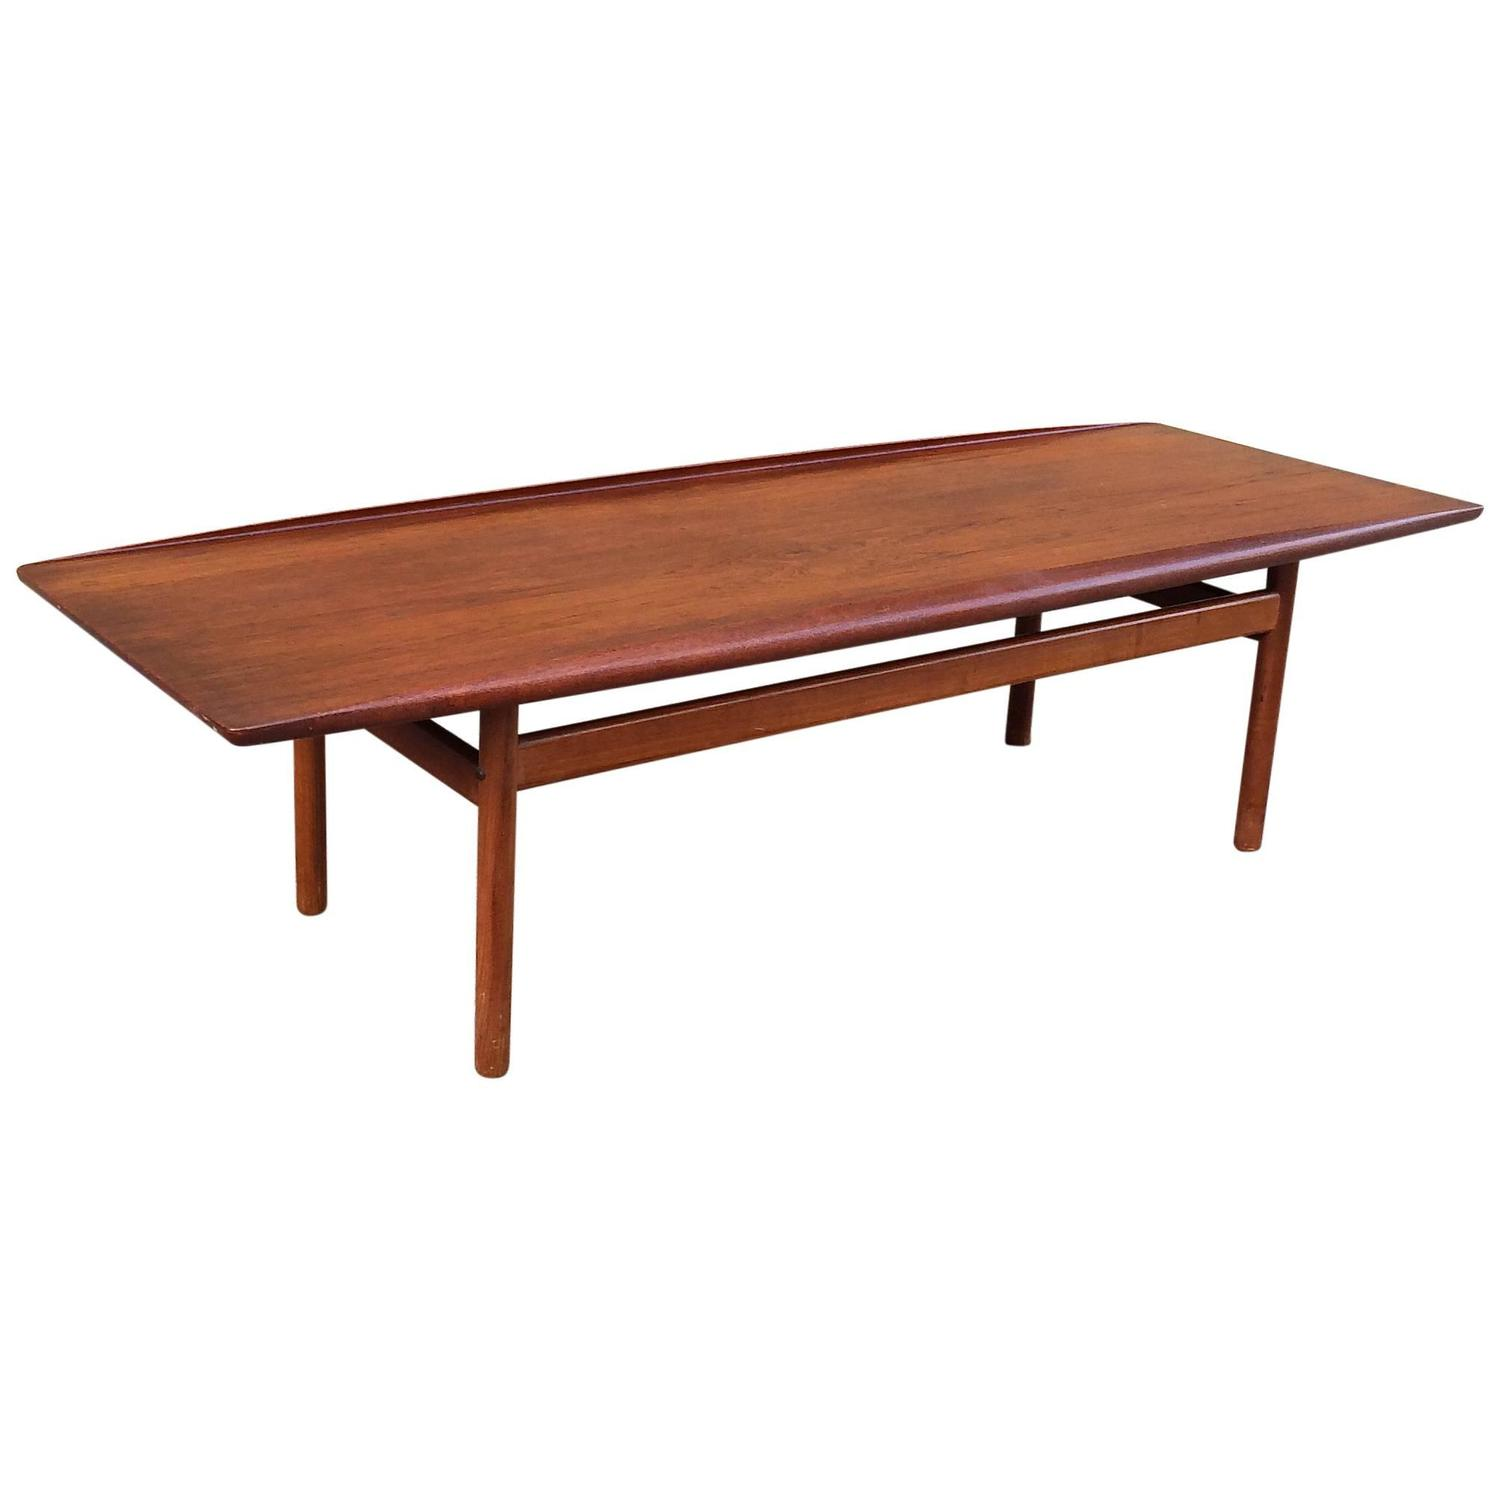 Teak Oil Coffee Table: Teak Coffee Table By DUX At 1stdibs